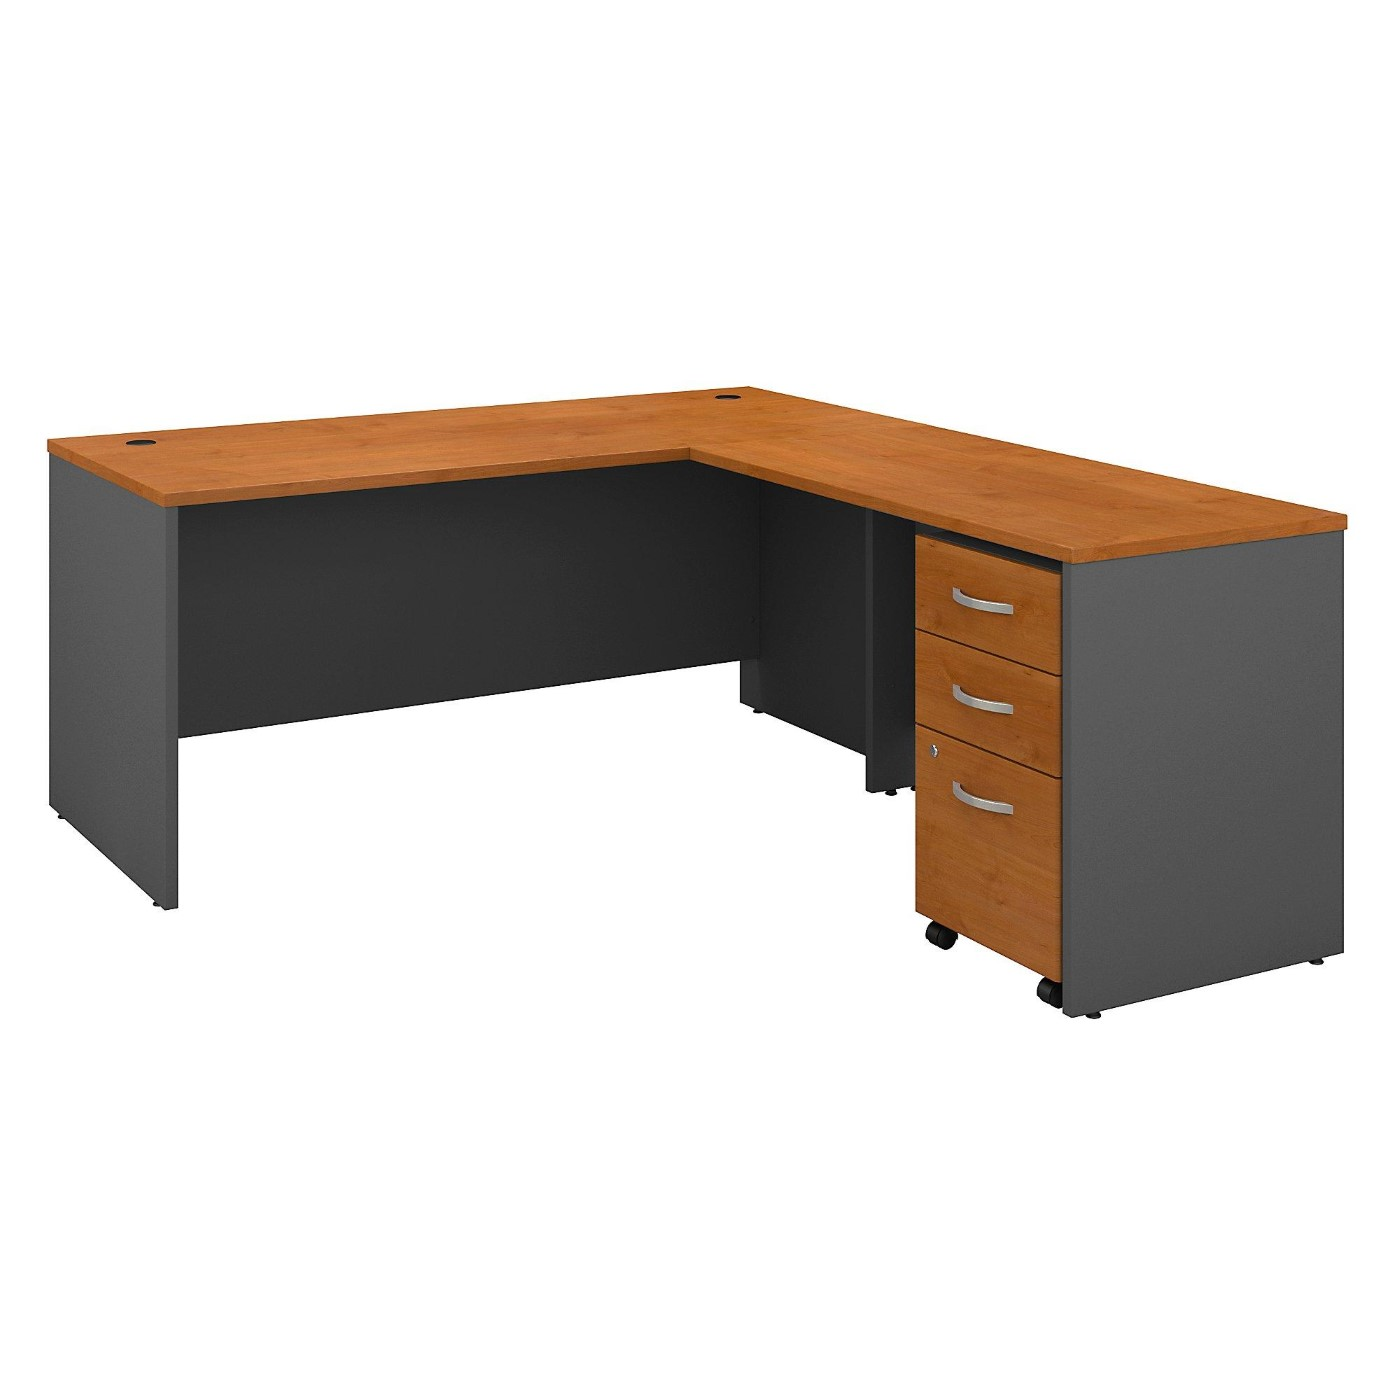 <font color=#c60><b>BUSH BUSINESS FURNITURE SERIES C 66W L SHAPED DESK WITH 48W RETURN AND MOBILE FILE CABINET. FREE SHIPPING</font></b>